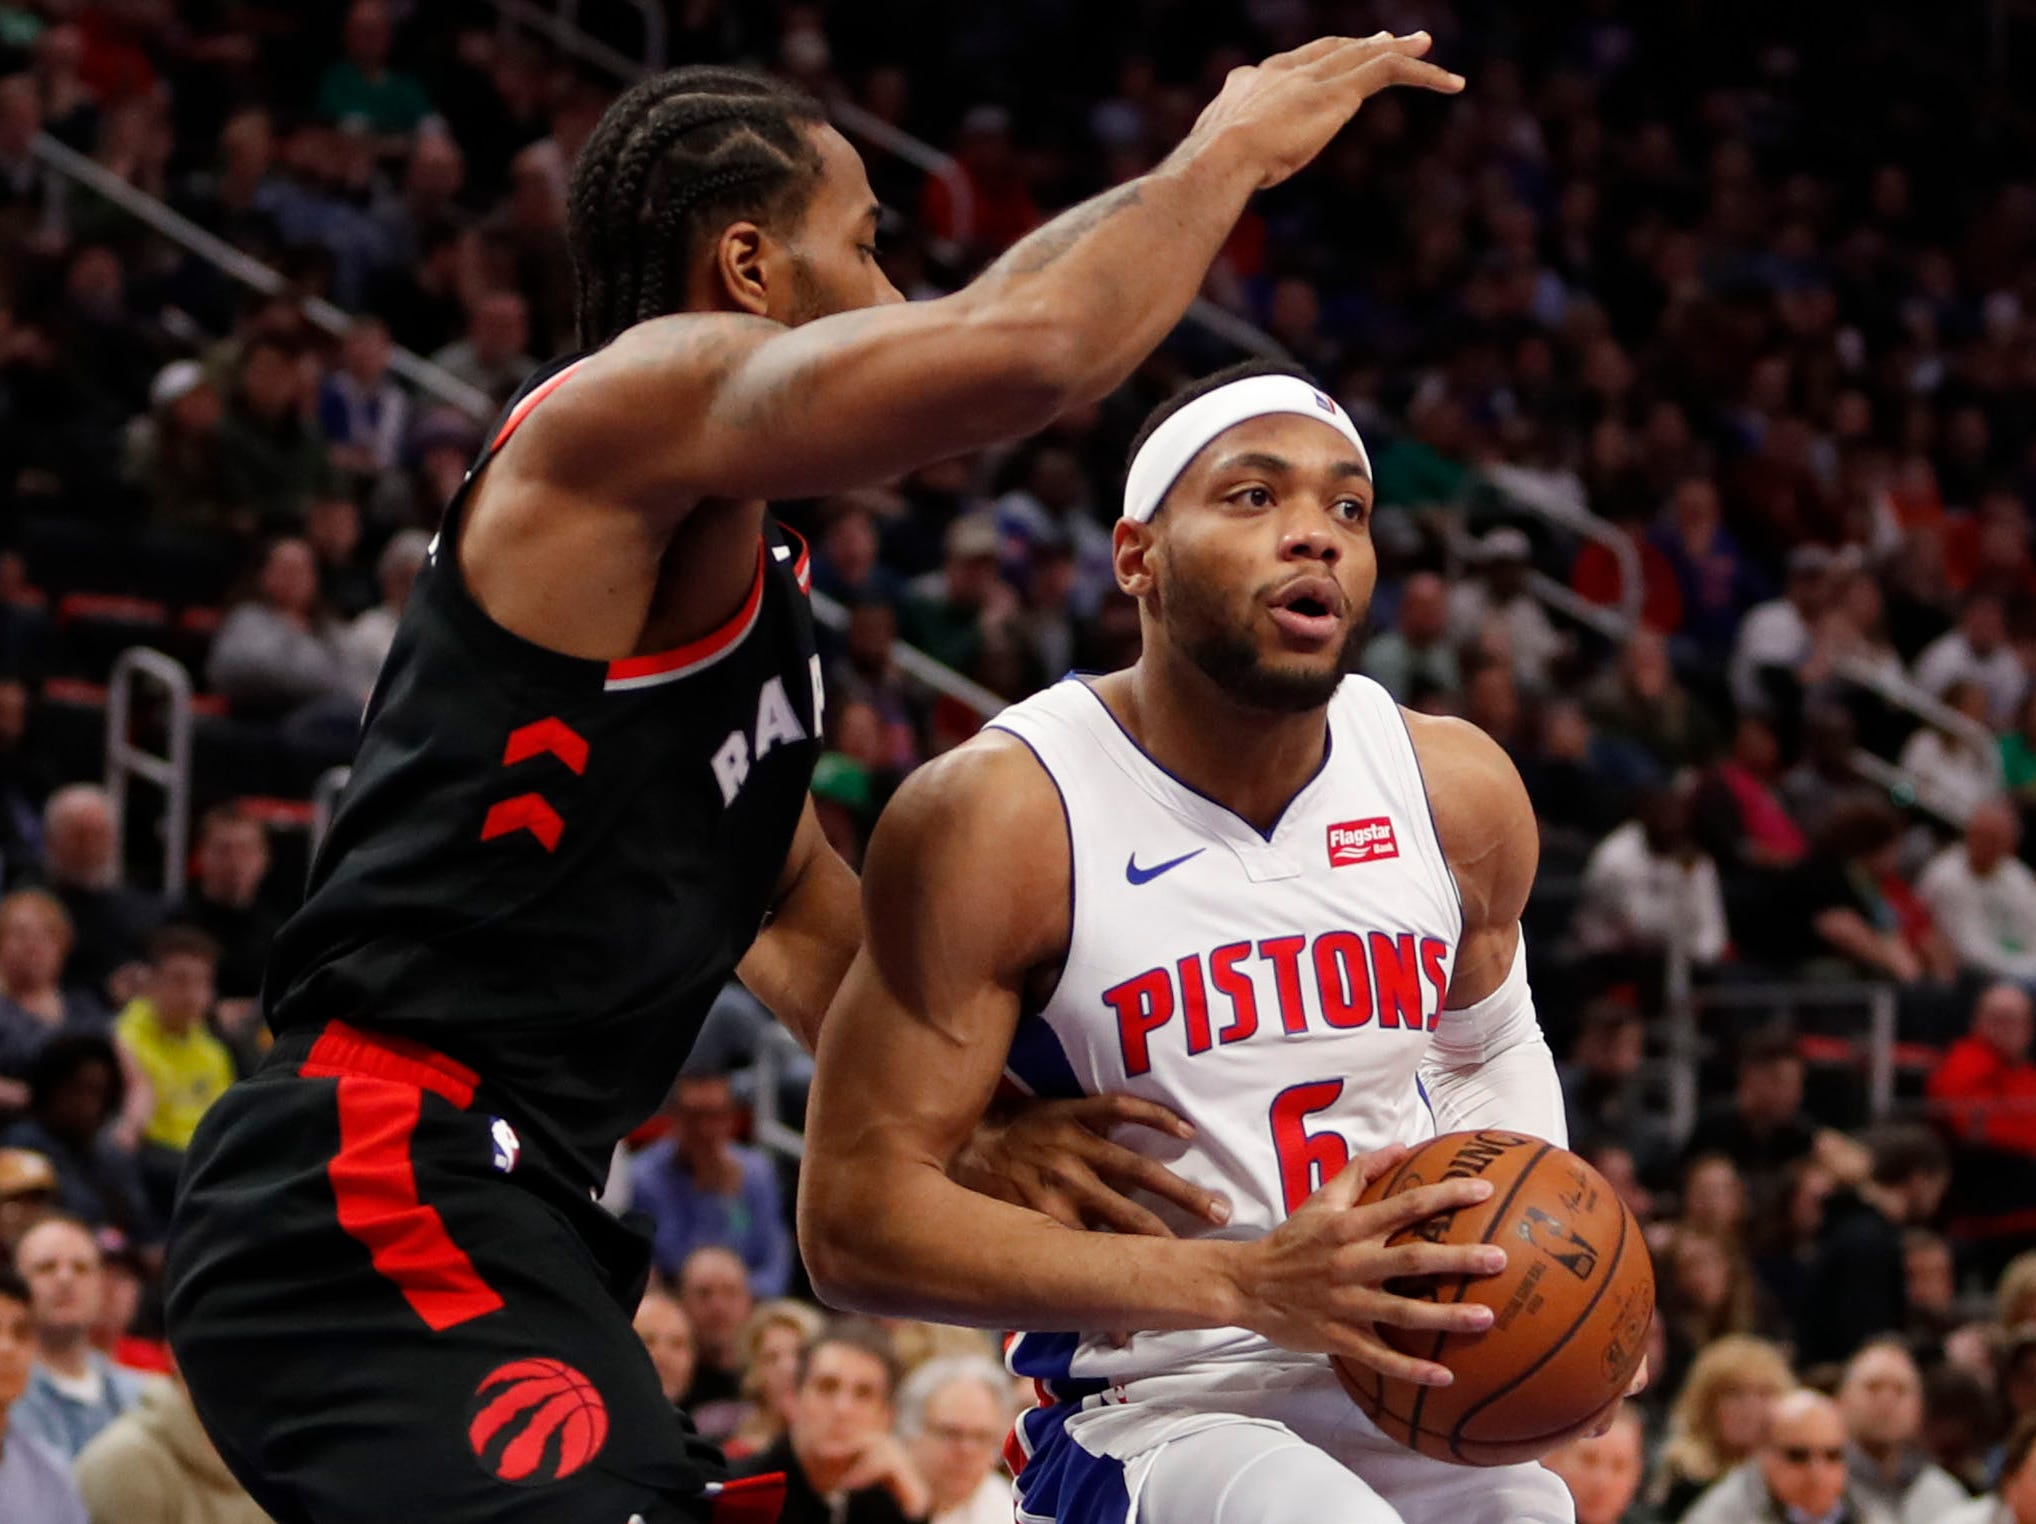 Detroit Pistons guard Bruce Brown is defended by Toronto Raptors forward Kawhi Leonard during the first quarter at Little Caesars Arena, Sunday, March 17, 2019.